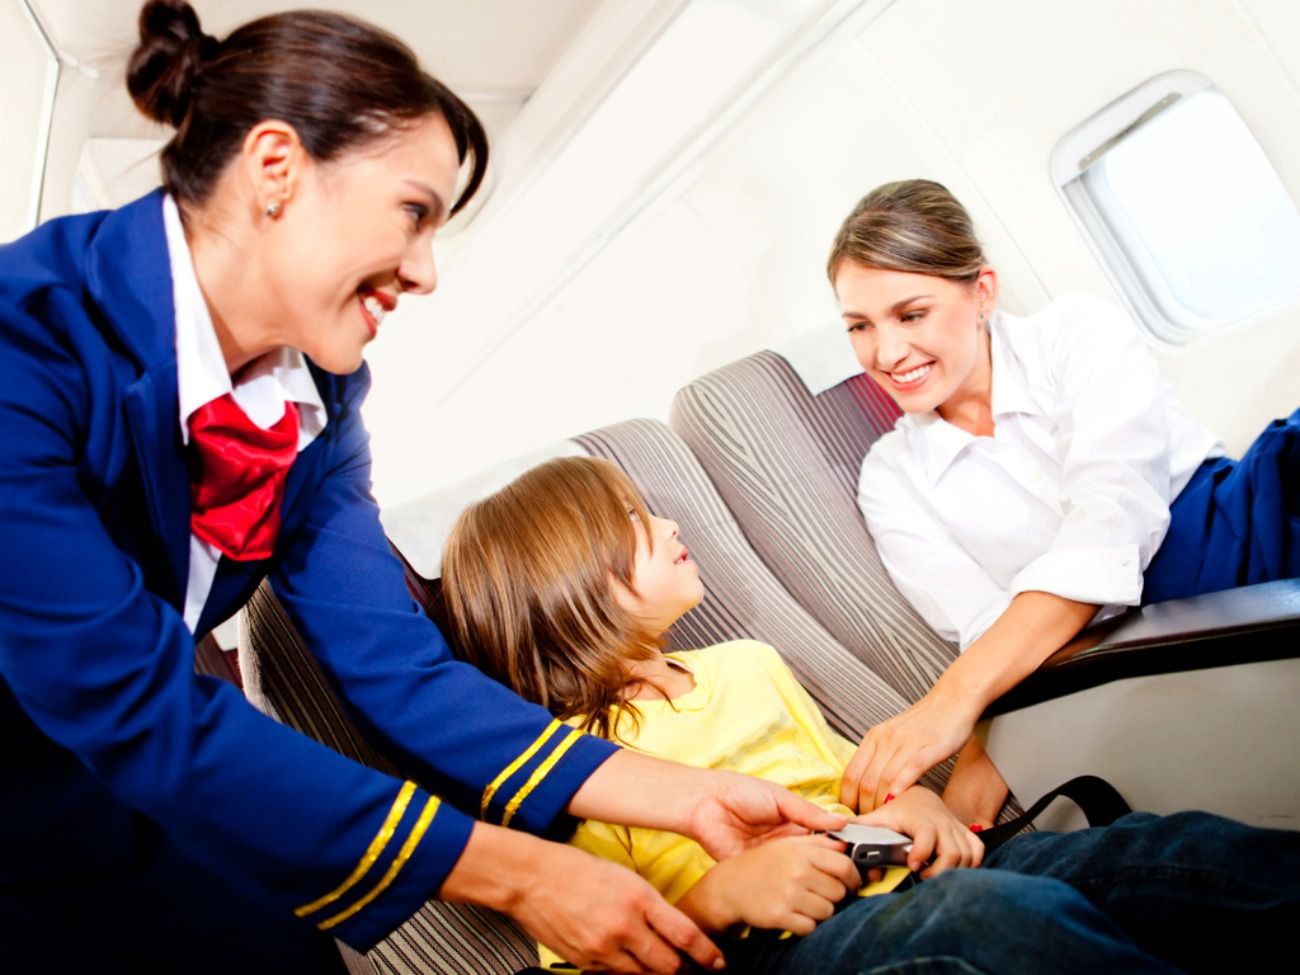 Parent S Guide To Flying With Kids Top Travel Tips